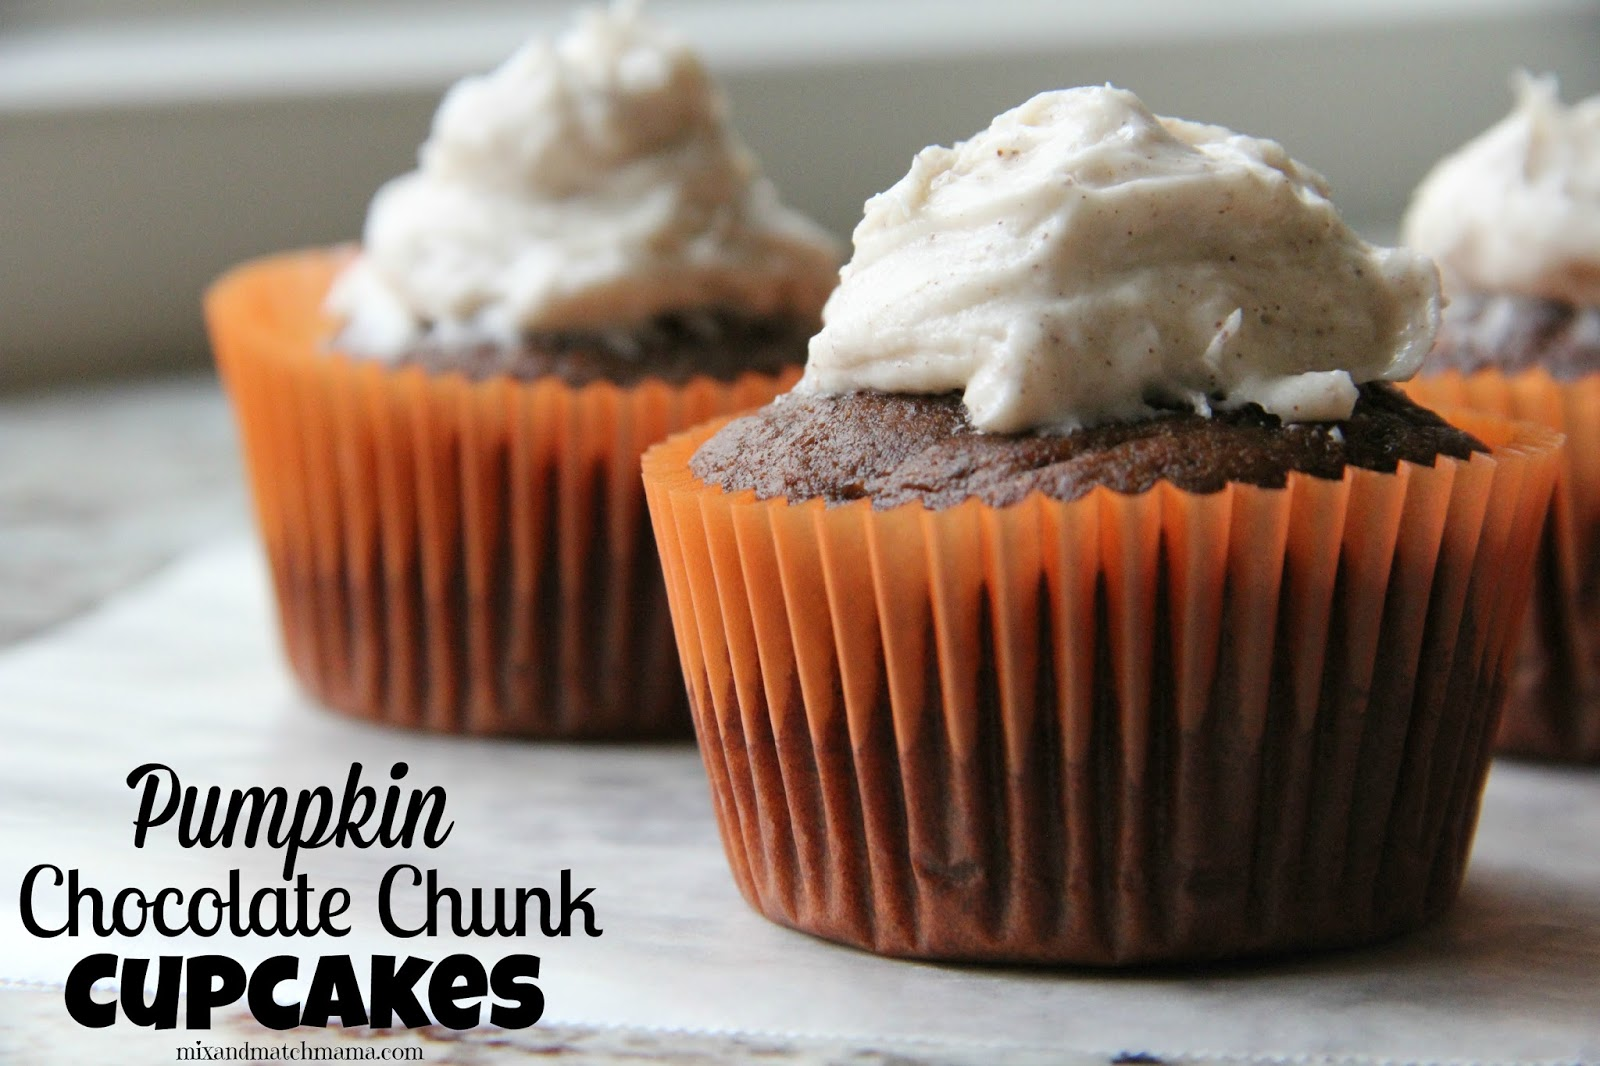 Pumpkin and chocolate together is one of my very favorite combinations ...